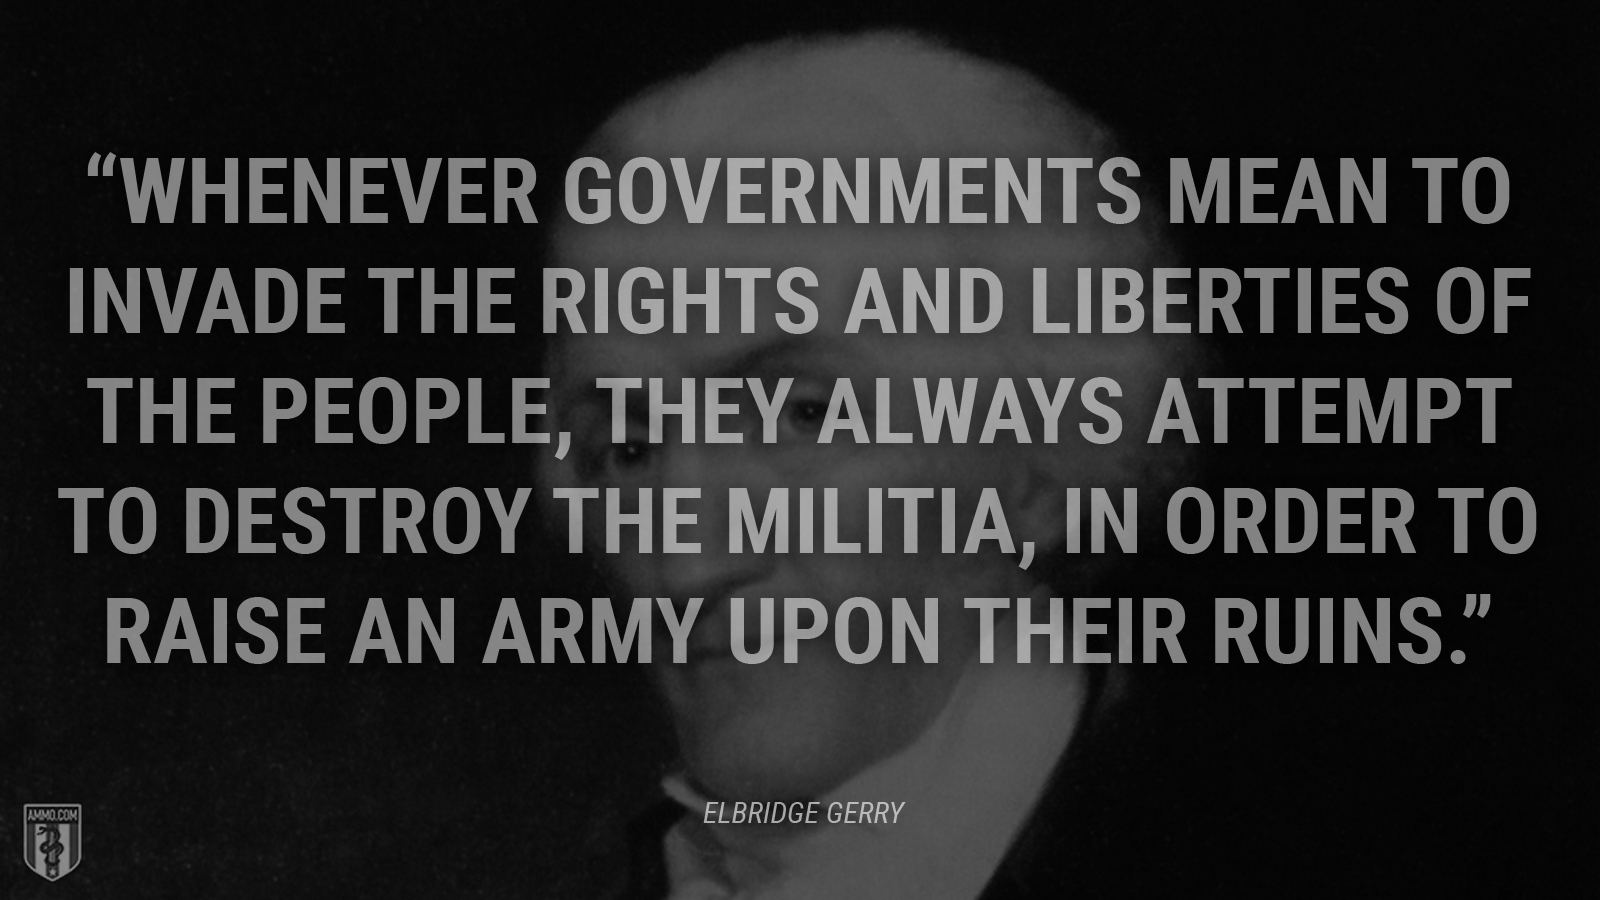 """Whenever governments mean to invade the rights and liberties of the people, they always attempt to destroy the militia, in order to raise an army upon their ruins."" - Rep. Elbridge Gerry"